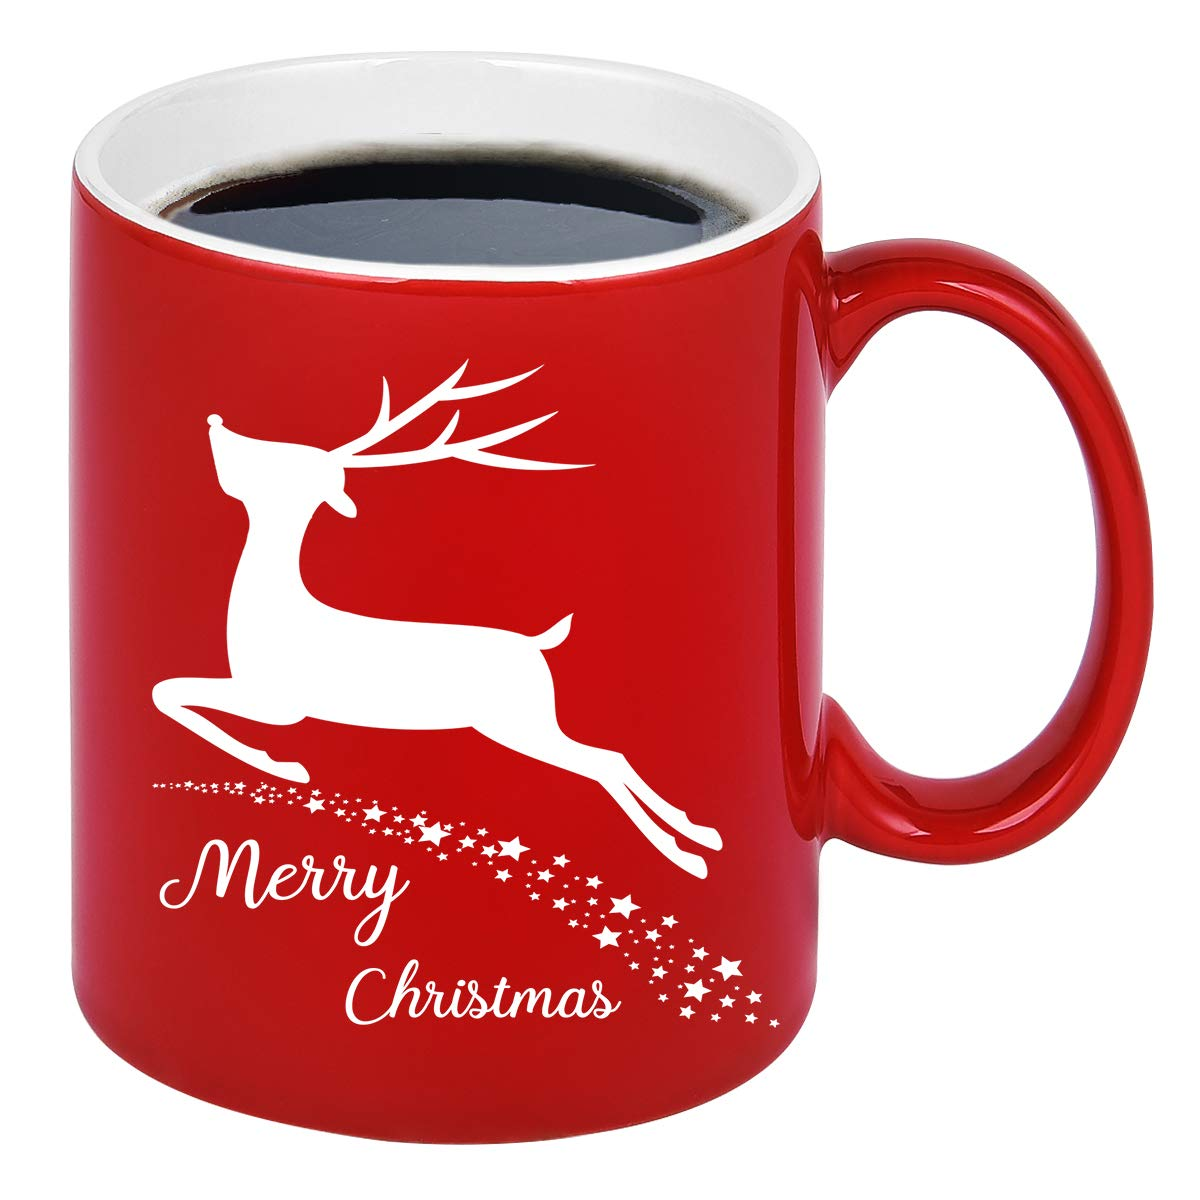 Image of Merry Christmas Reindeer Mug